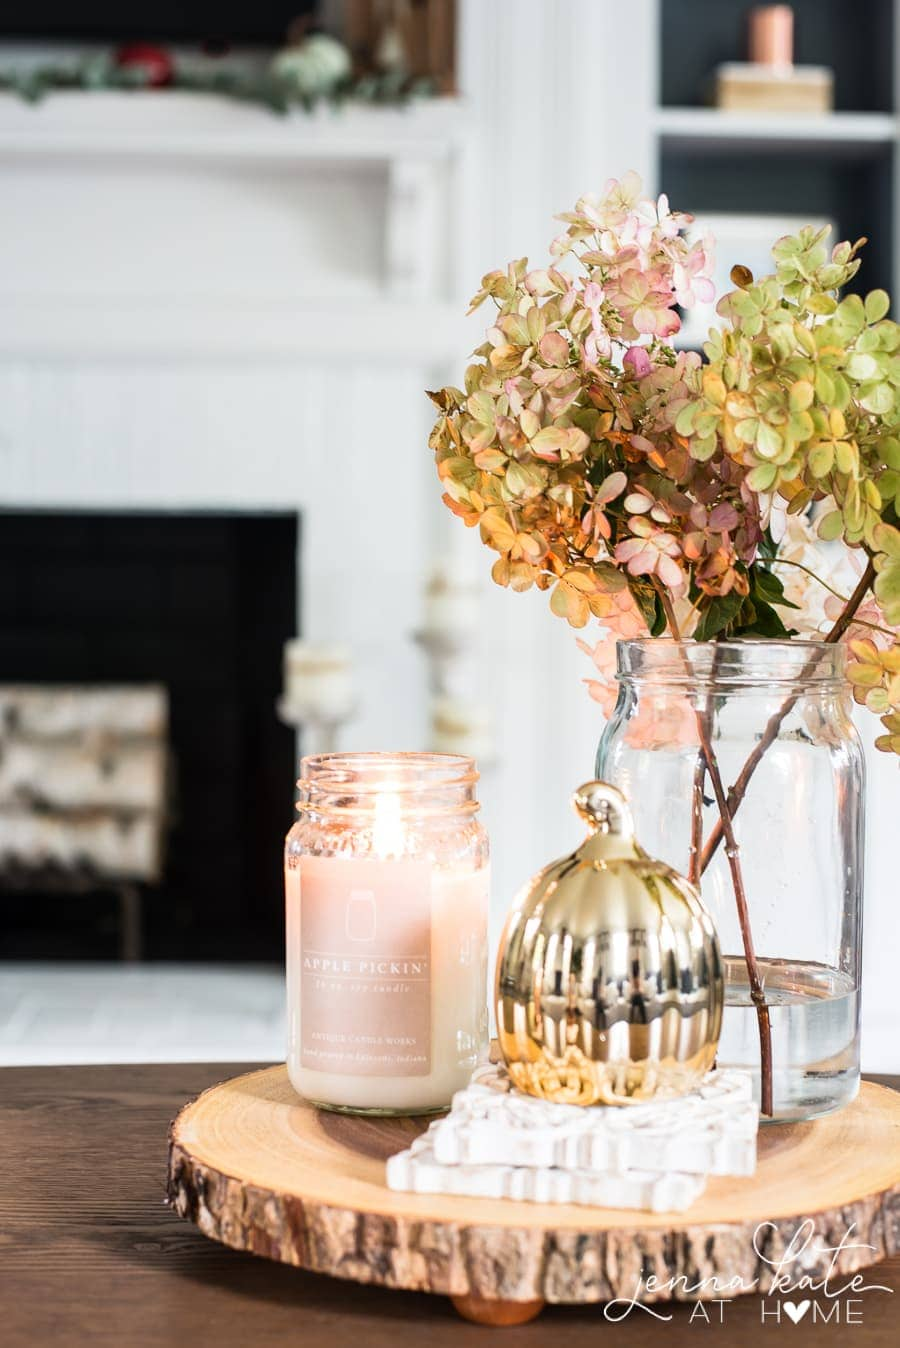 Scented Candles and Dried Flowers on the Coffee Table are perfect for fall